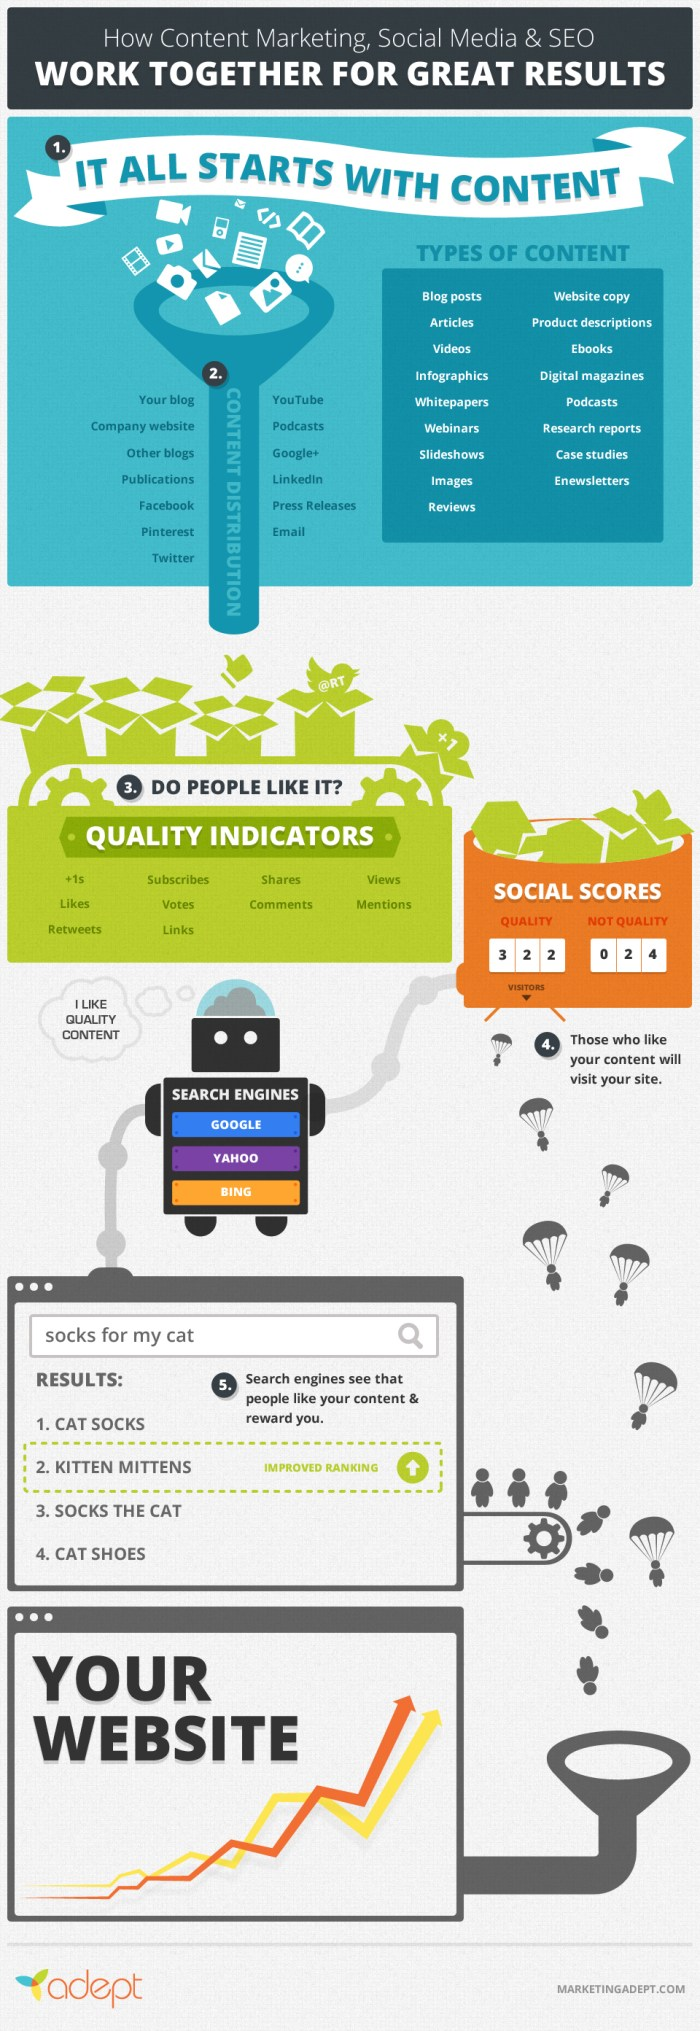 SEO, social media, content marketing, infographic,